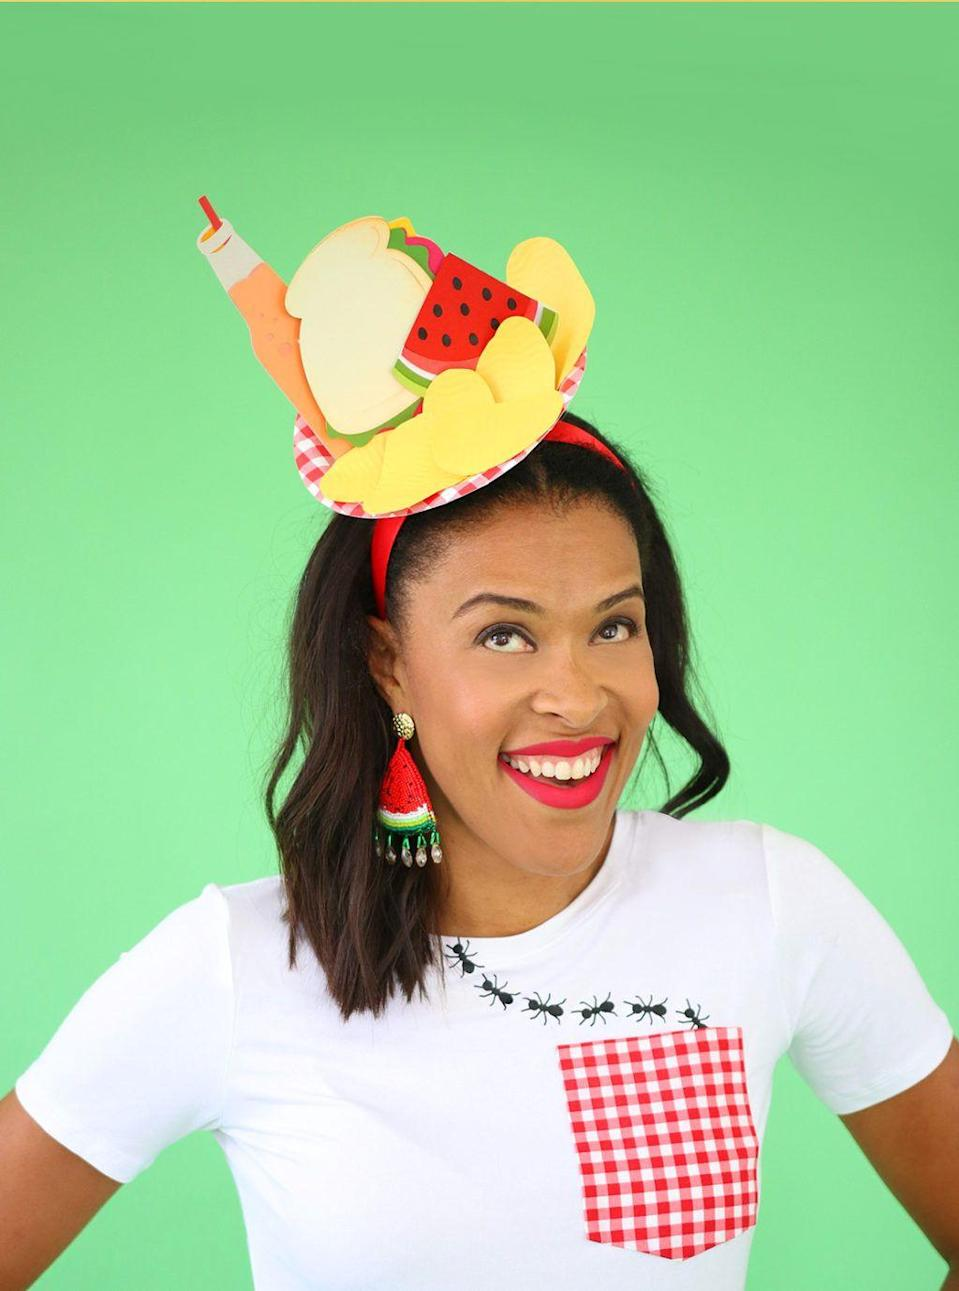 """<p>Amber Kemp-Gerstel added a gingham pocket to a plain white T-shirt and then topped off the look with a paper picnic spread!</p><p><strong>Get the tutorial at <a href=""""https://damasklove.com/picnic/"""" rel=""""nofollow noopener"""" target=""""_blank"""" data-ylk=""""slk:Damask Love"""" class=""""link rapid-noclick-resp"""">Damask Love</a>.</strong></p>"""